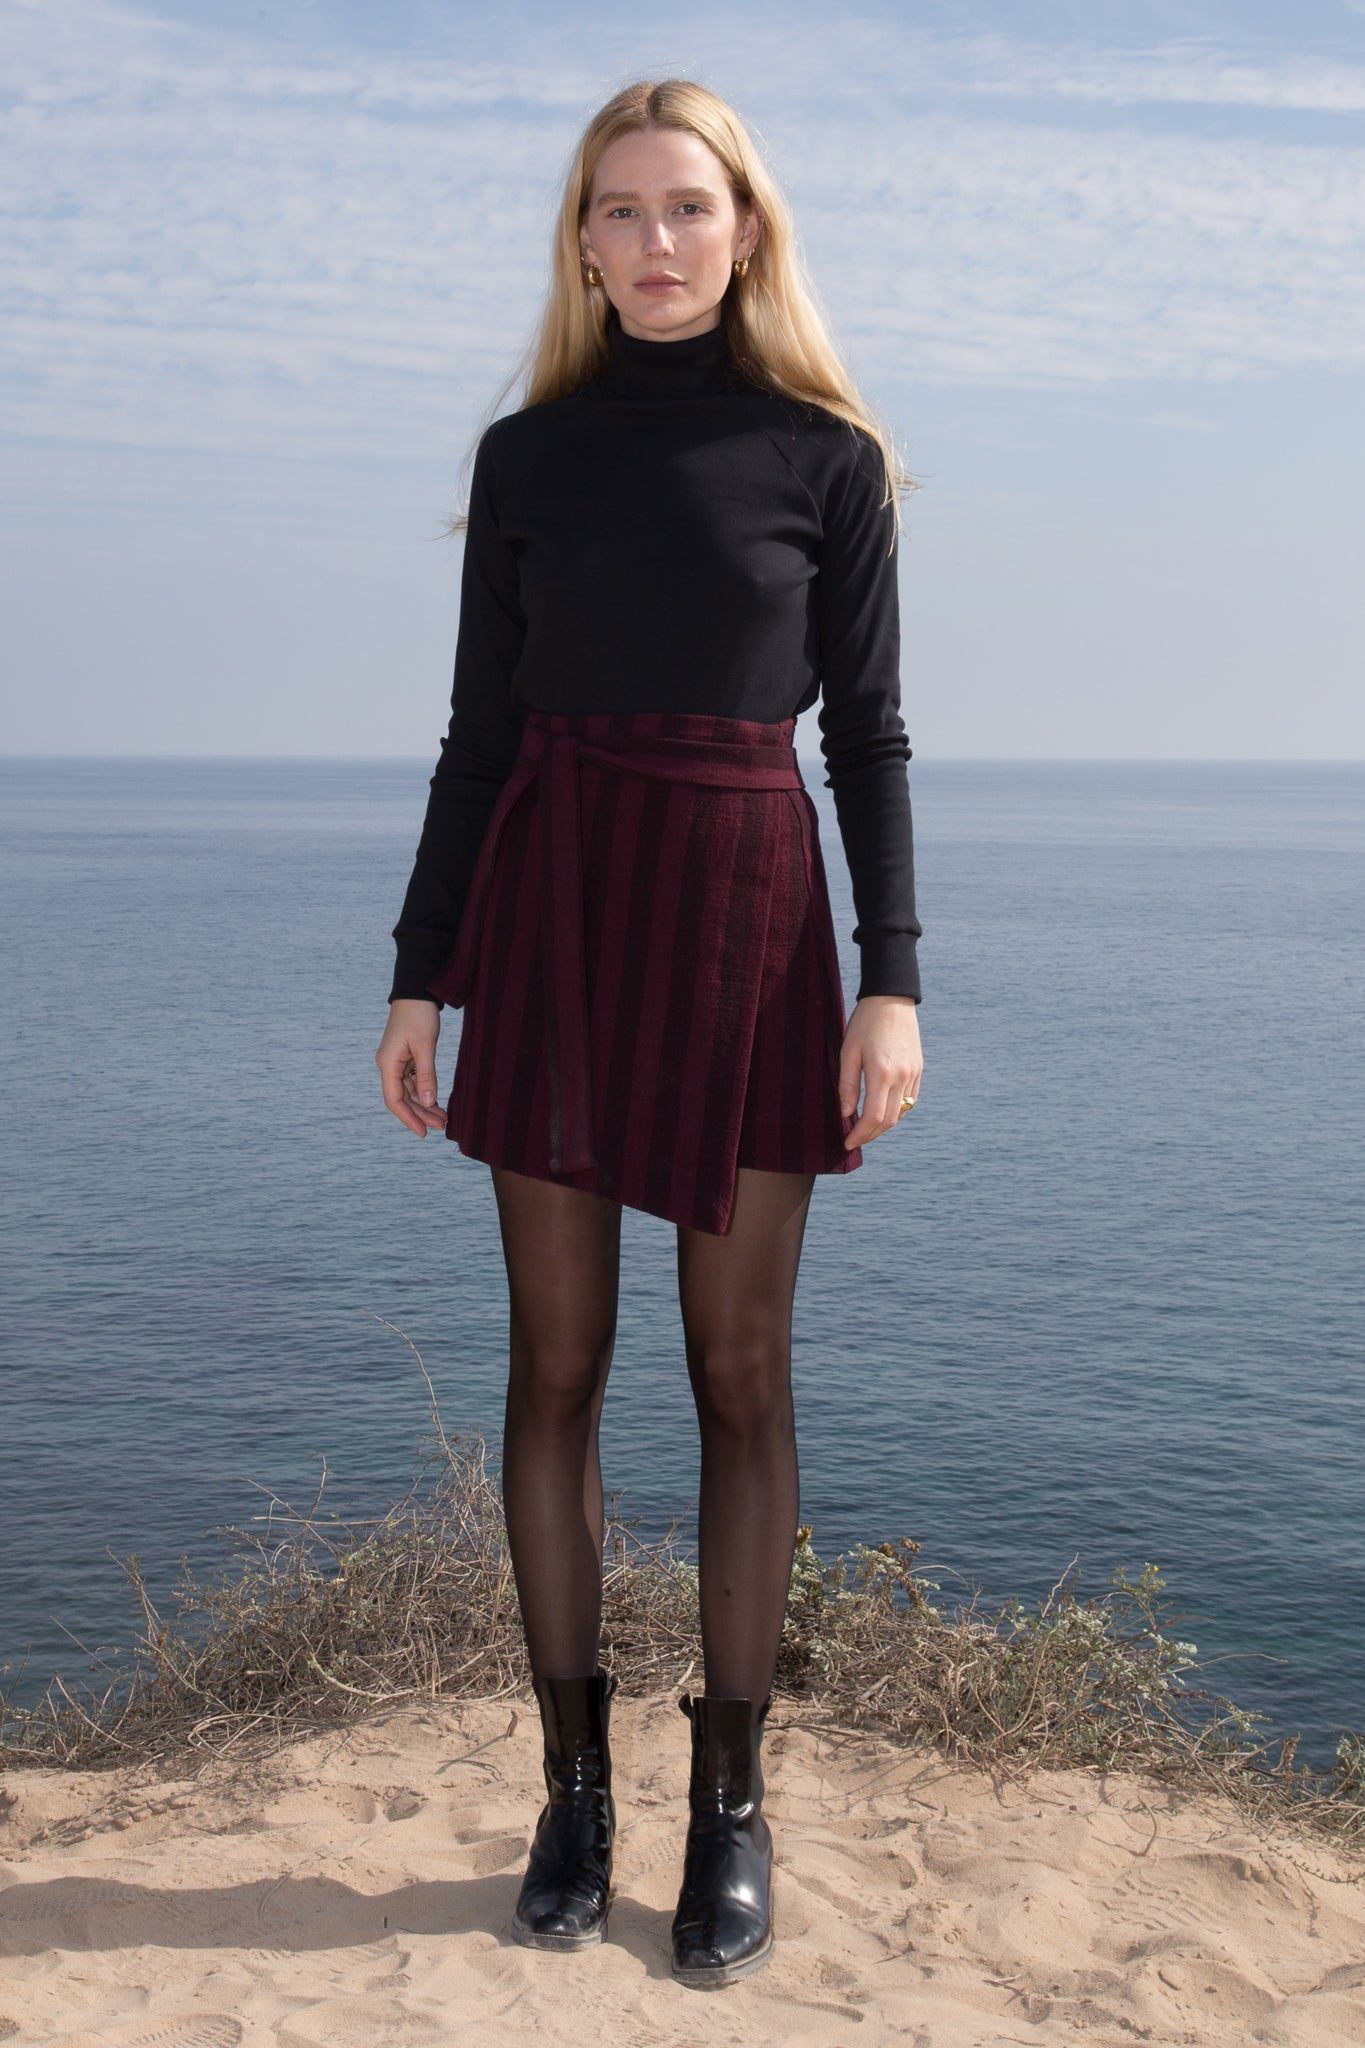 Model wears Small VIGNETO SKIRT - BURGUNDY STRIPE by Heidi Merrick (Front)